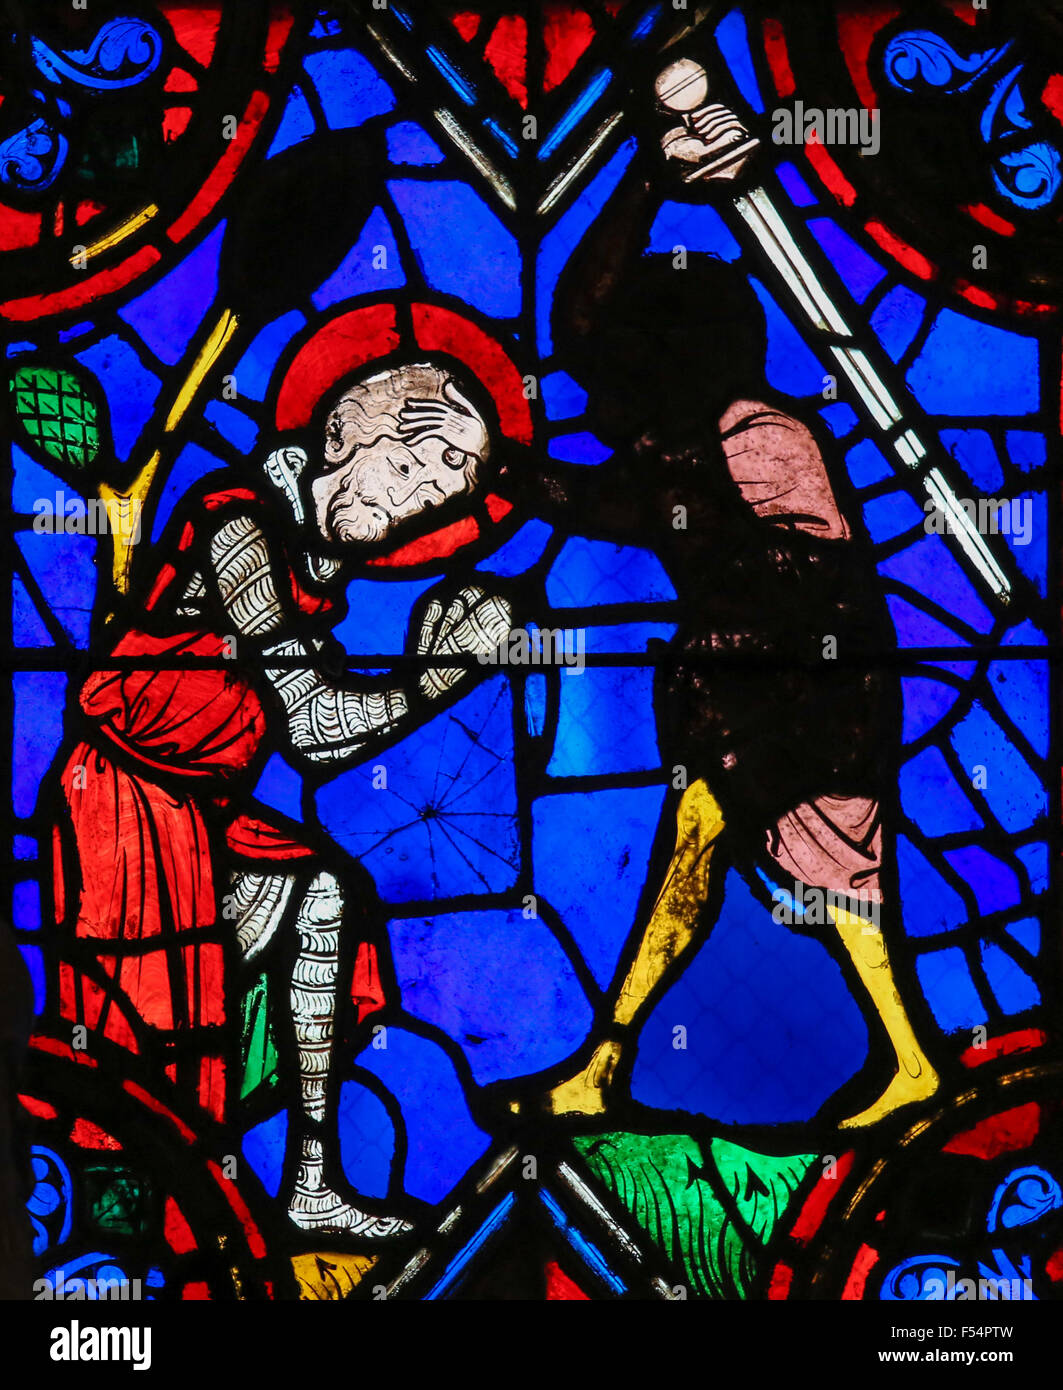 Stained glass window depicting the execution of a martyr in the Saint Gatien Cathedral of Tours, France. - Stock Image